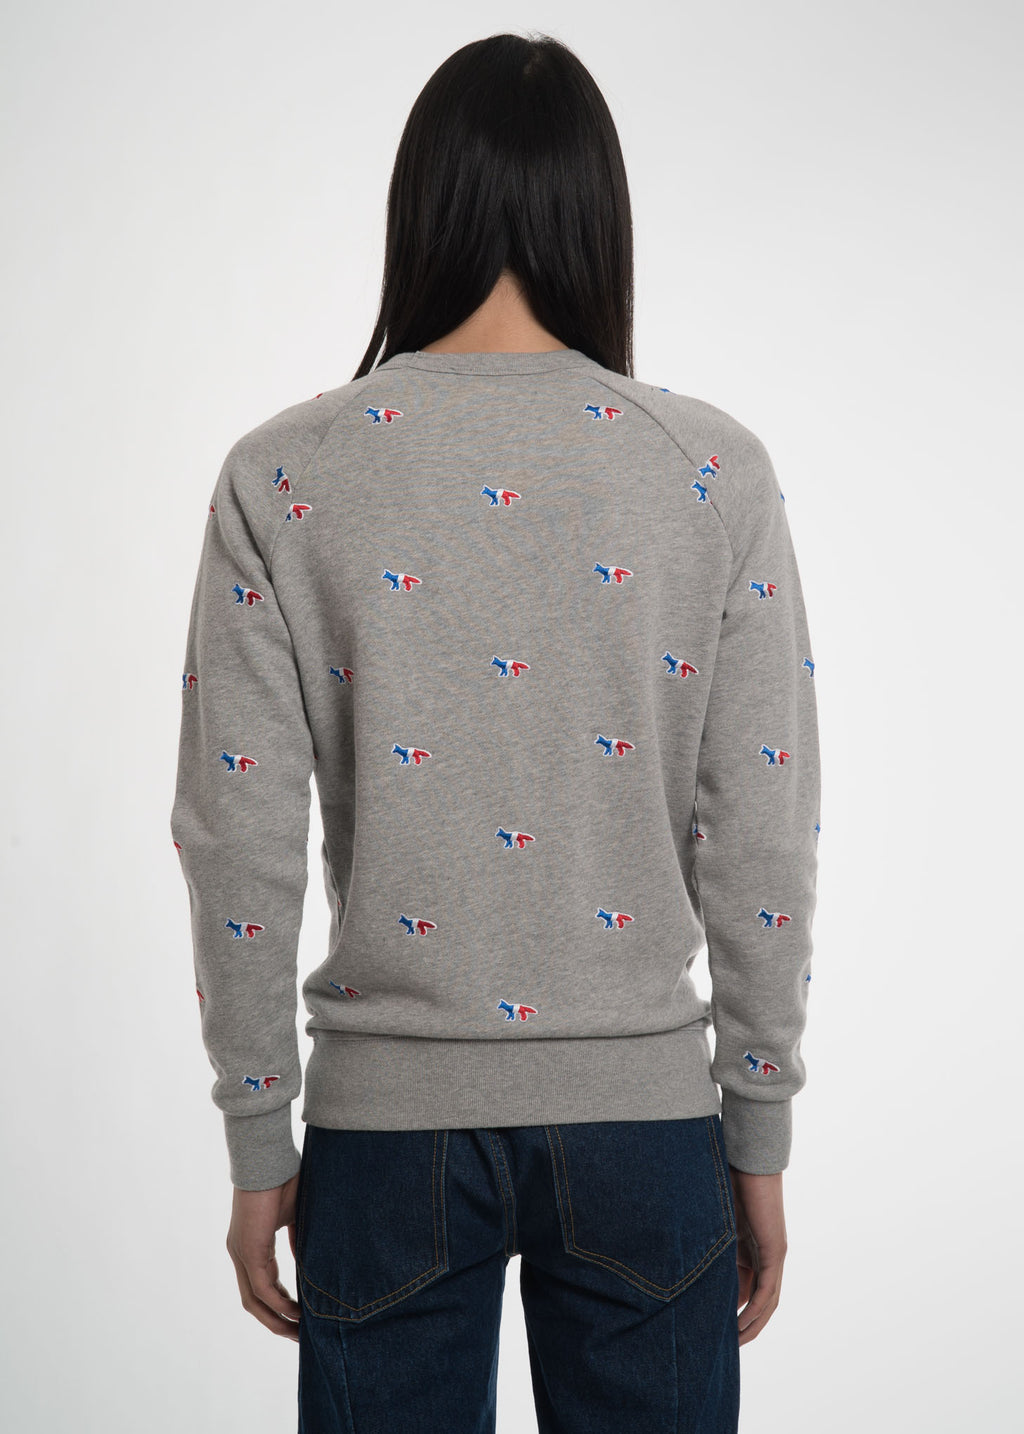 Maison Kitsune, Grey All Over Tricolor Fox Sweatshirt, 017 Shop